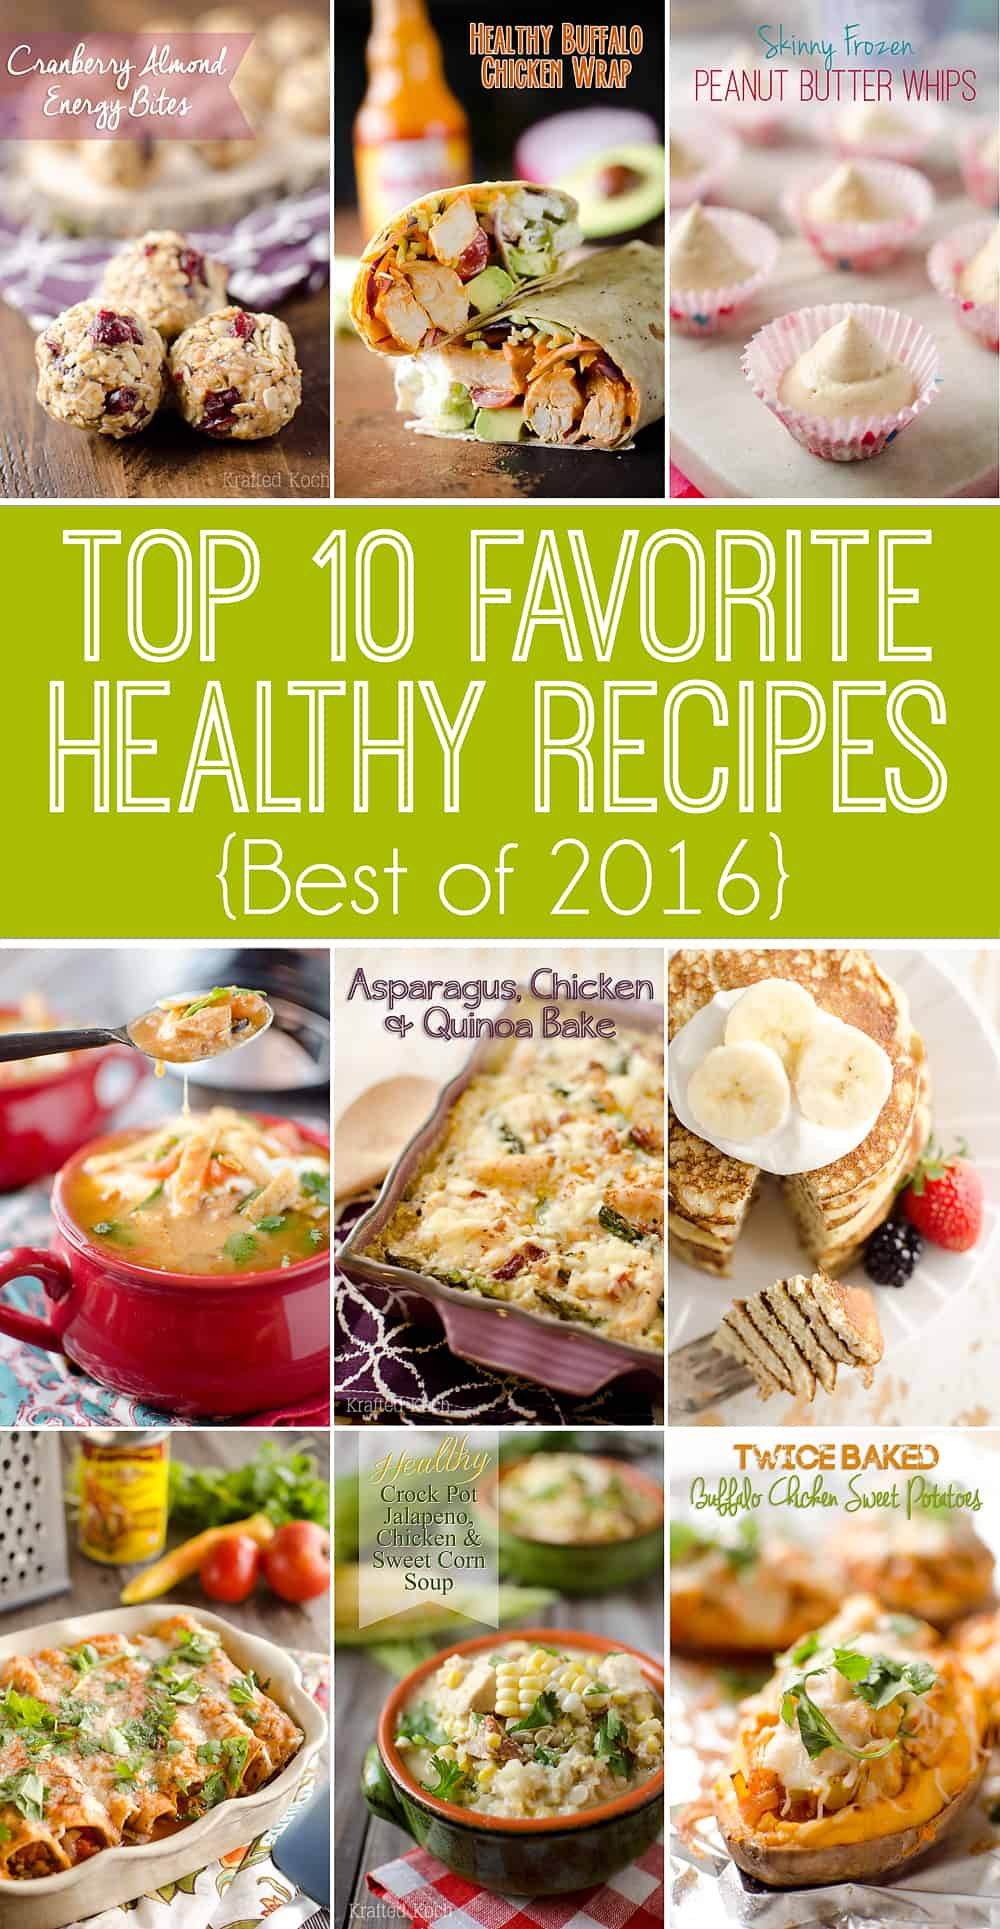 Top 10 Favorite Healthy Recipes are the best dinner, lunch, snack and dessert recipes lightened up from 2016!